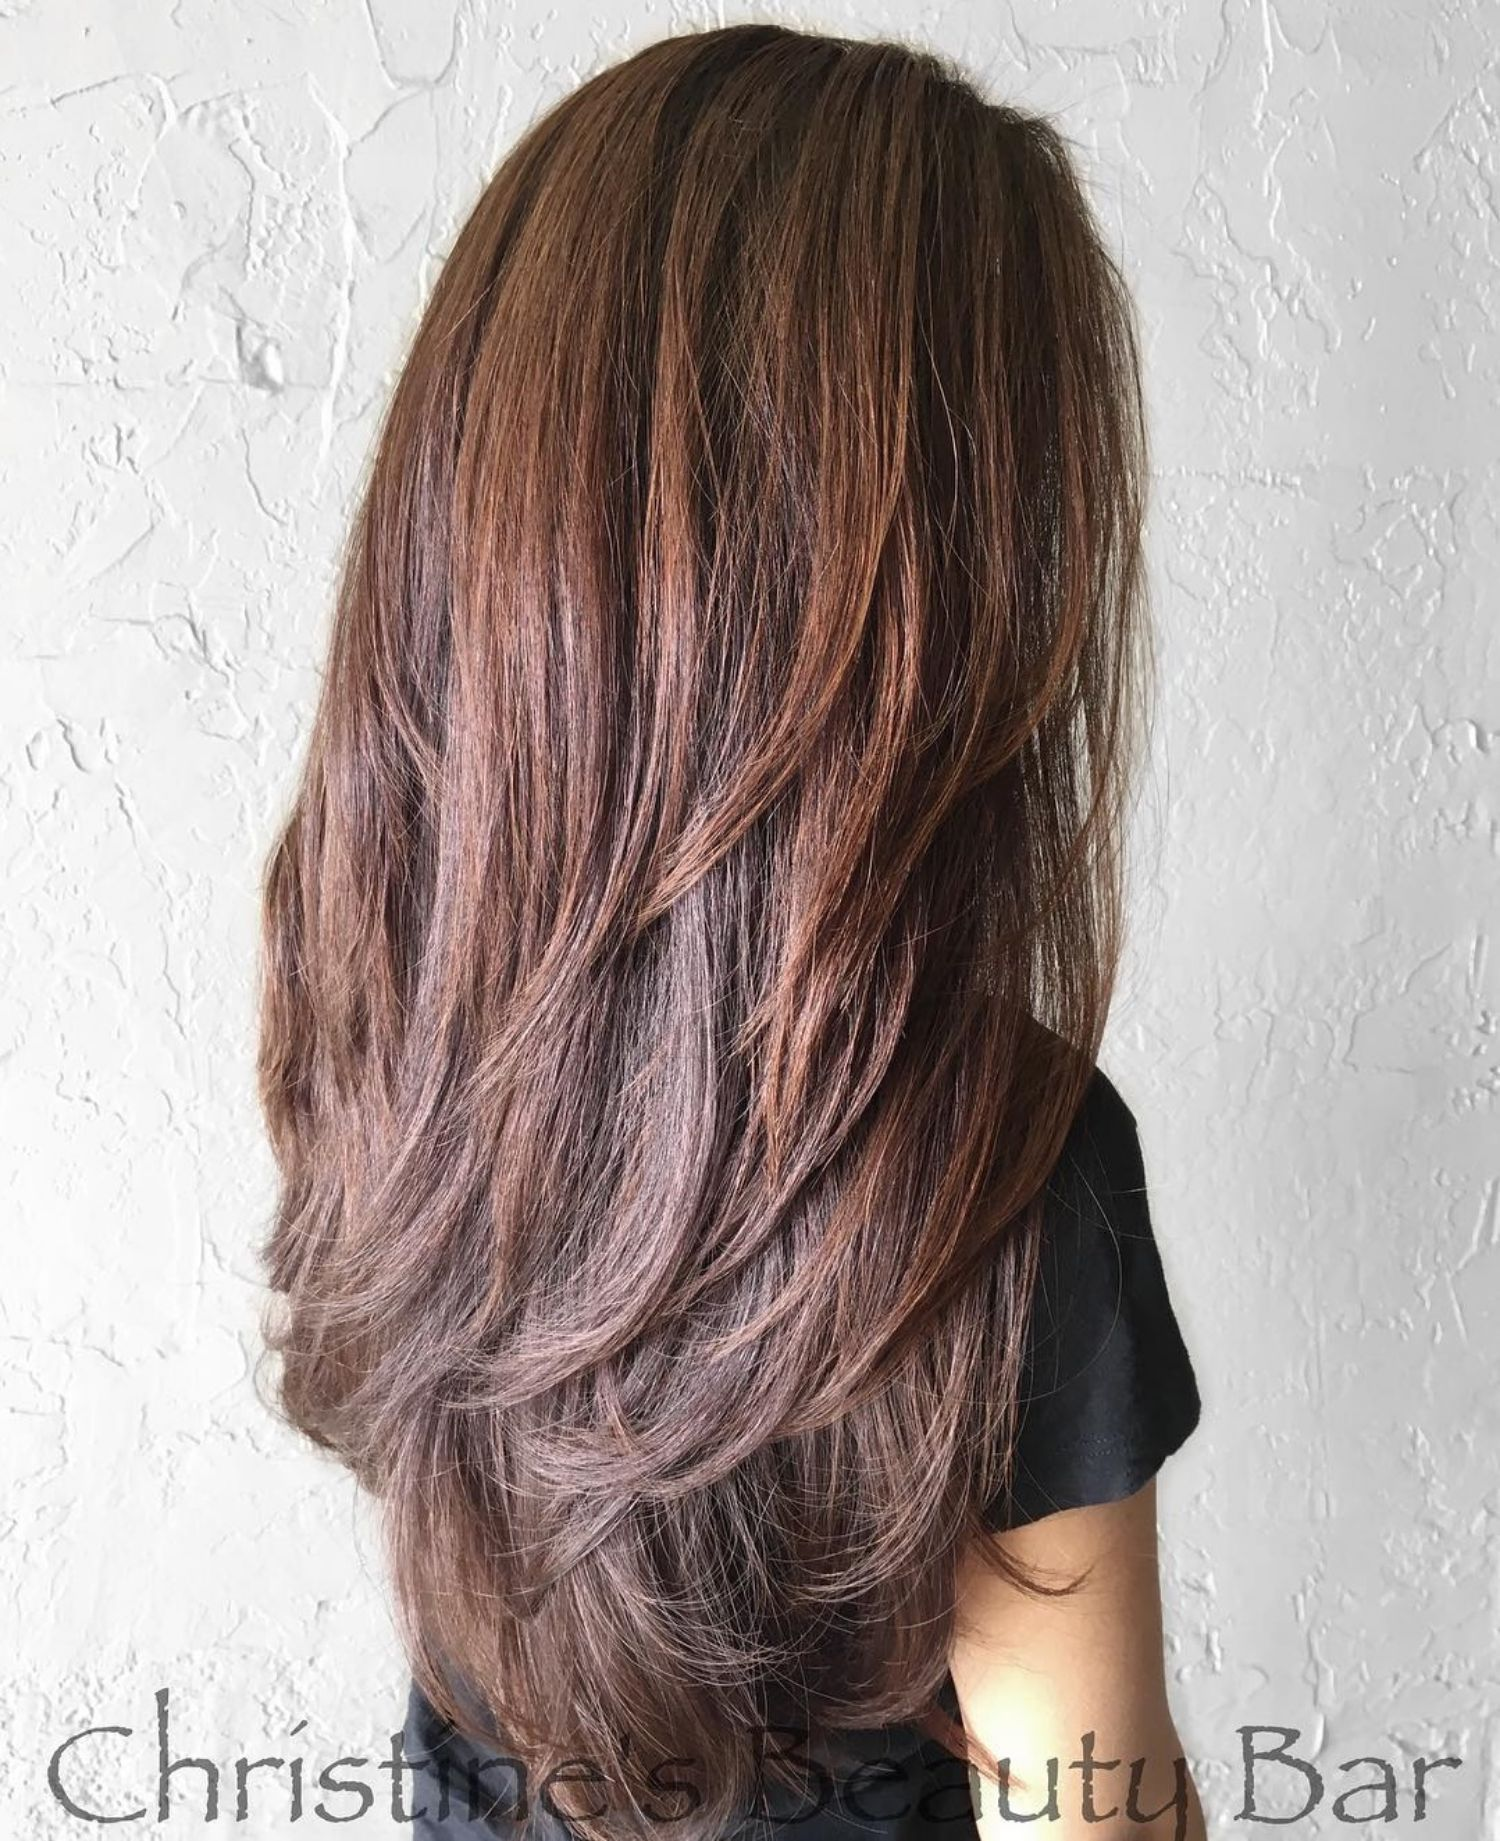 Long Haircut Styles | 80 Cute Layered Hairstyles And Cuts For Long Hair In 2019